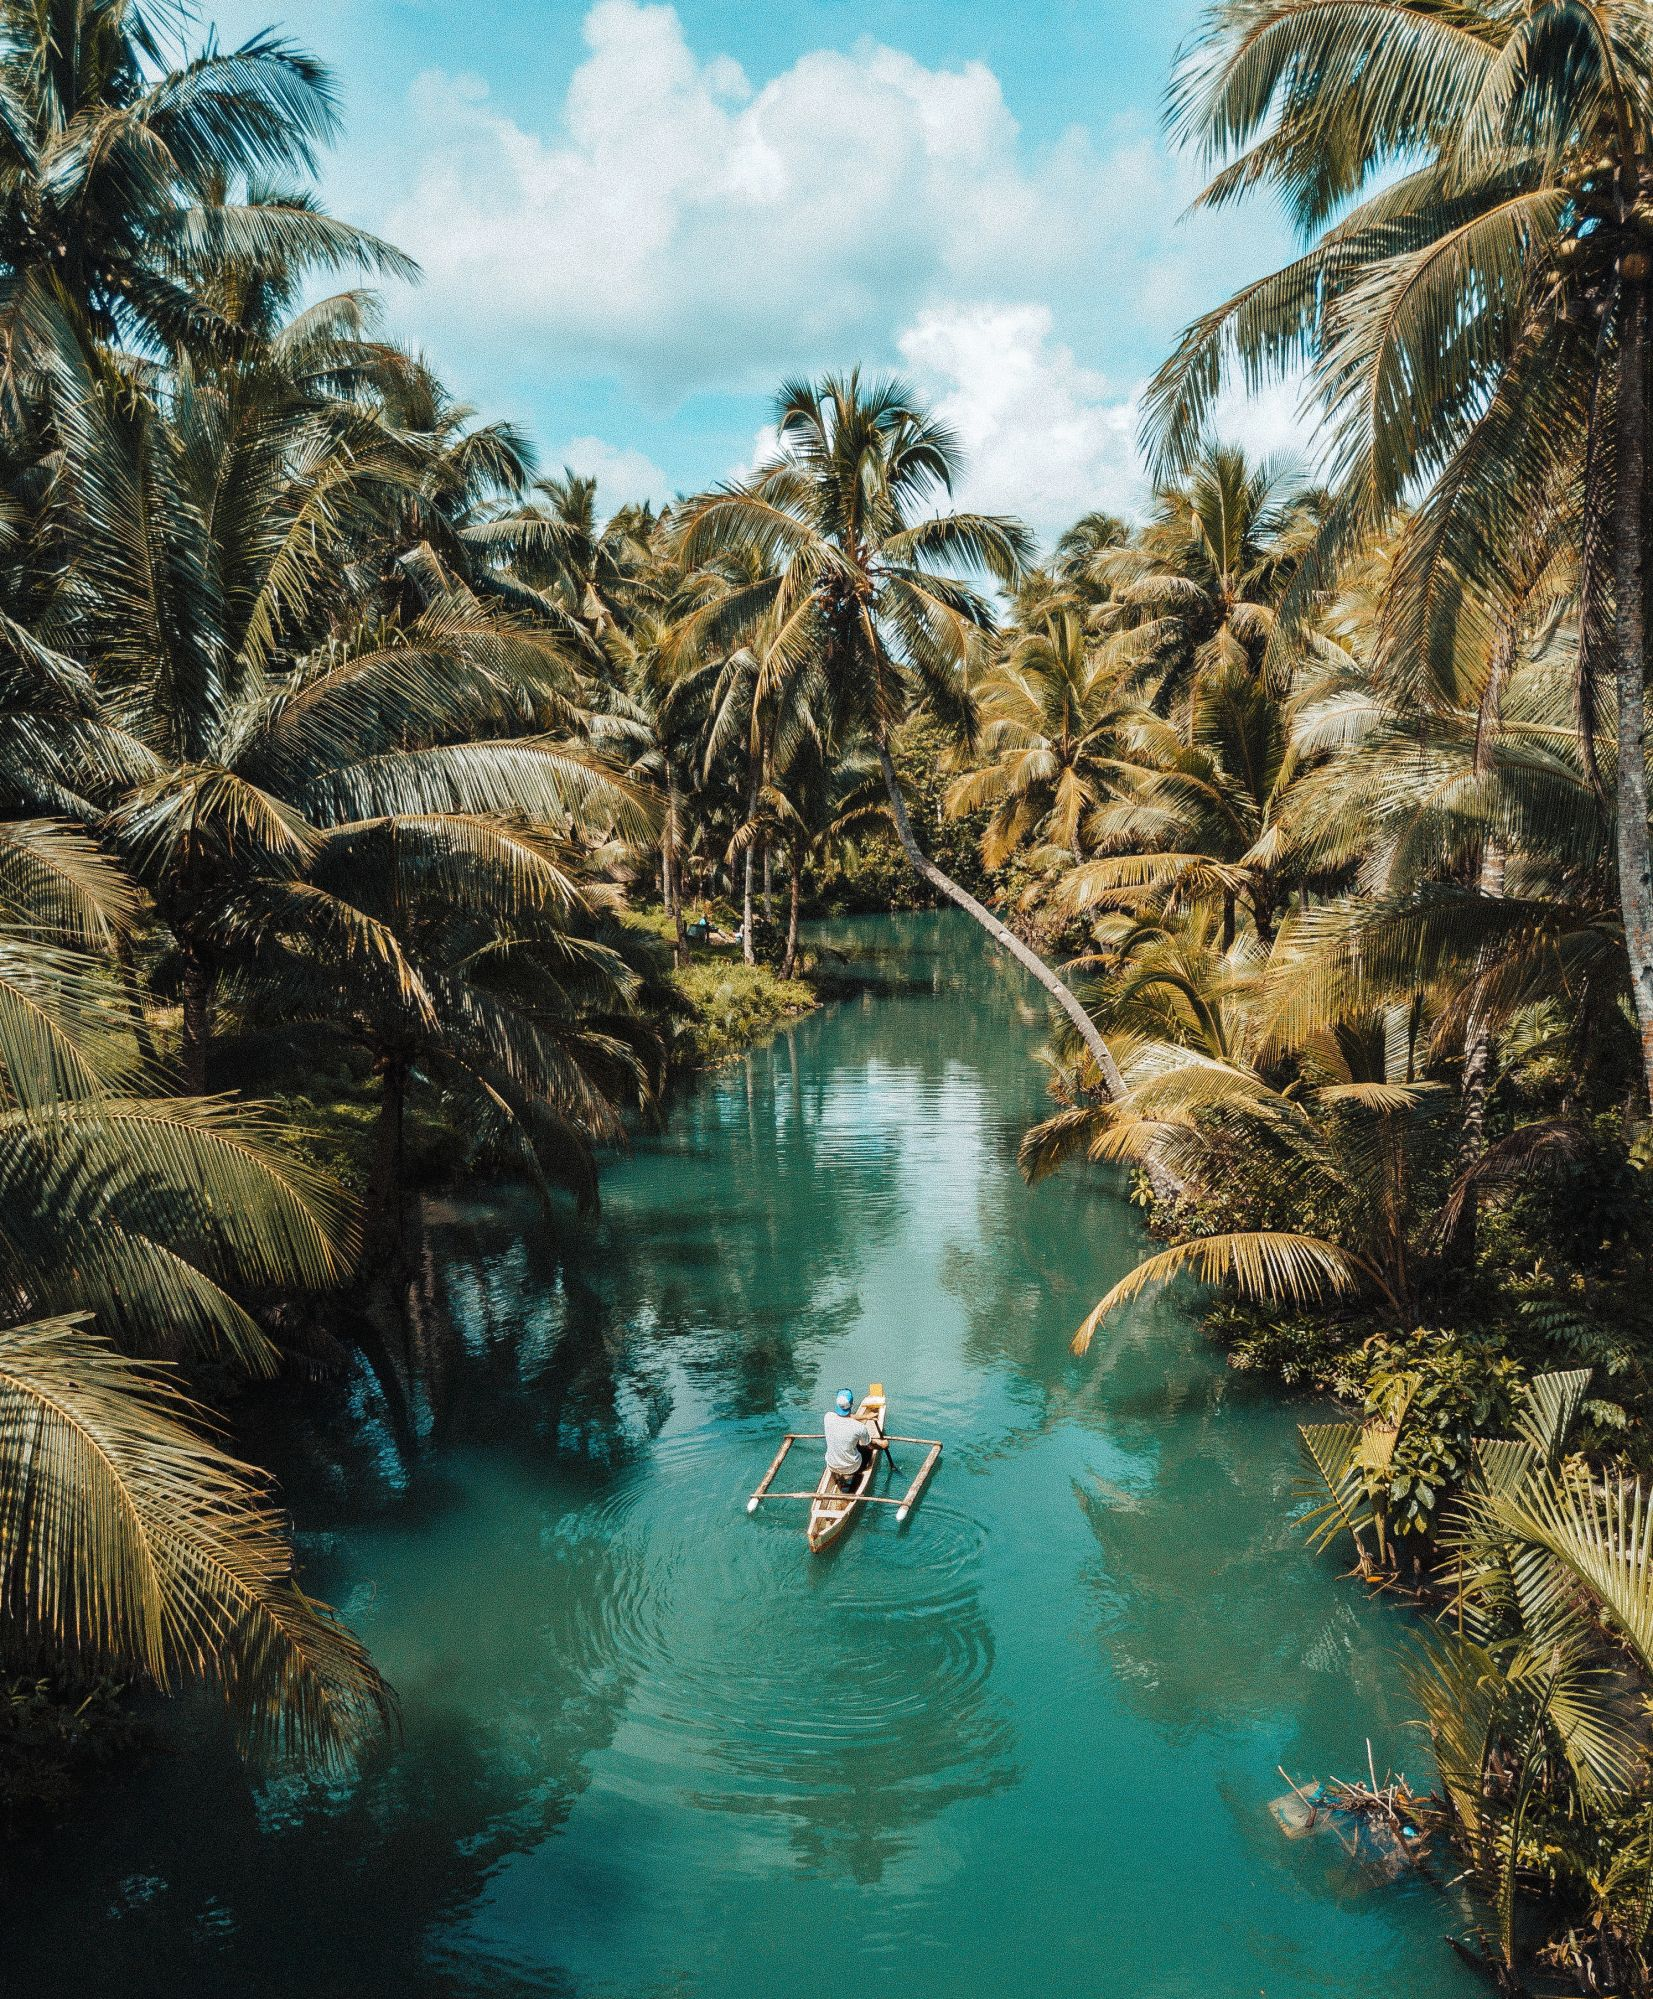 A 2019 Travel Guide To Siargao Island—One Of The Philippines' Best Kept Secrets